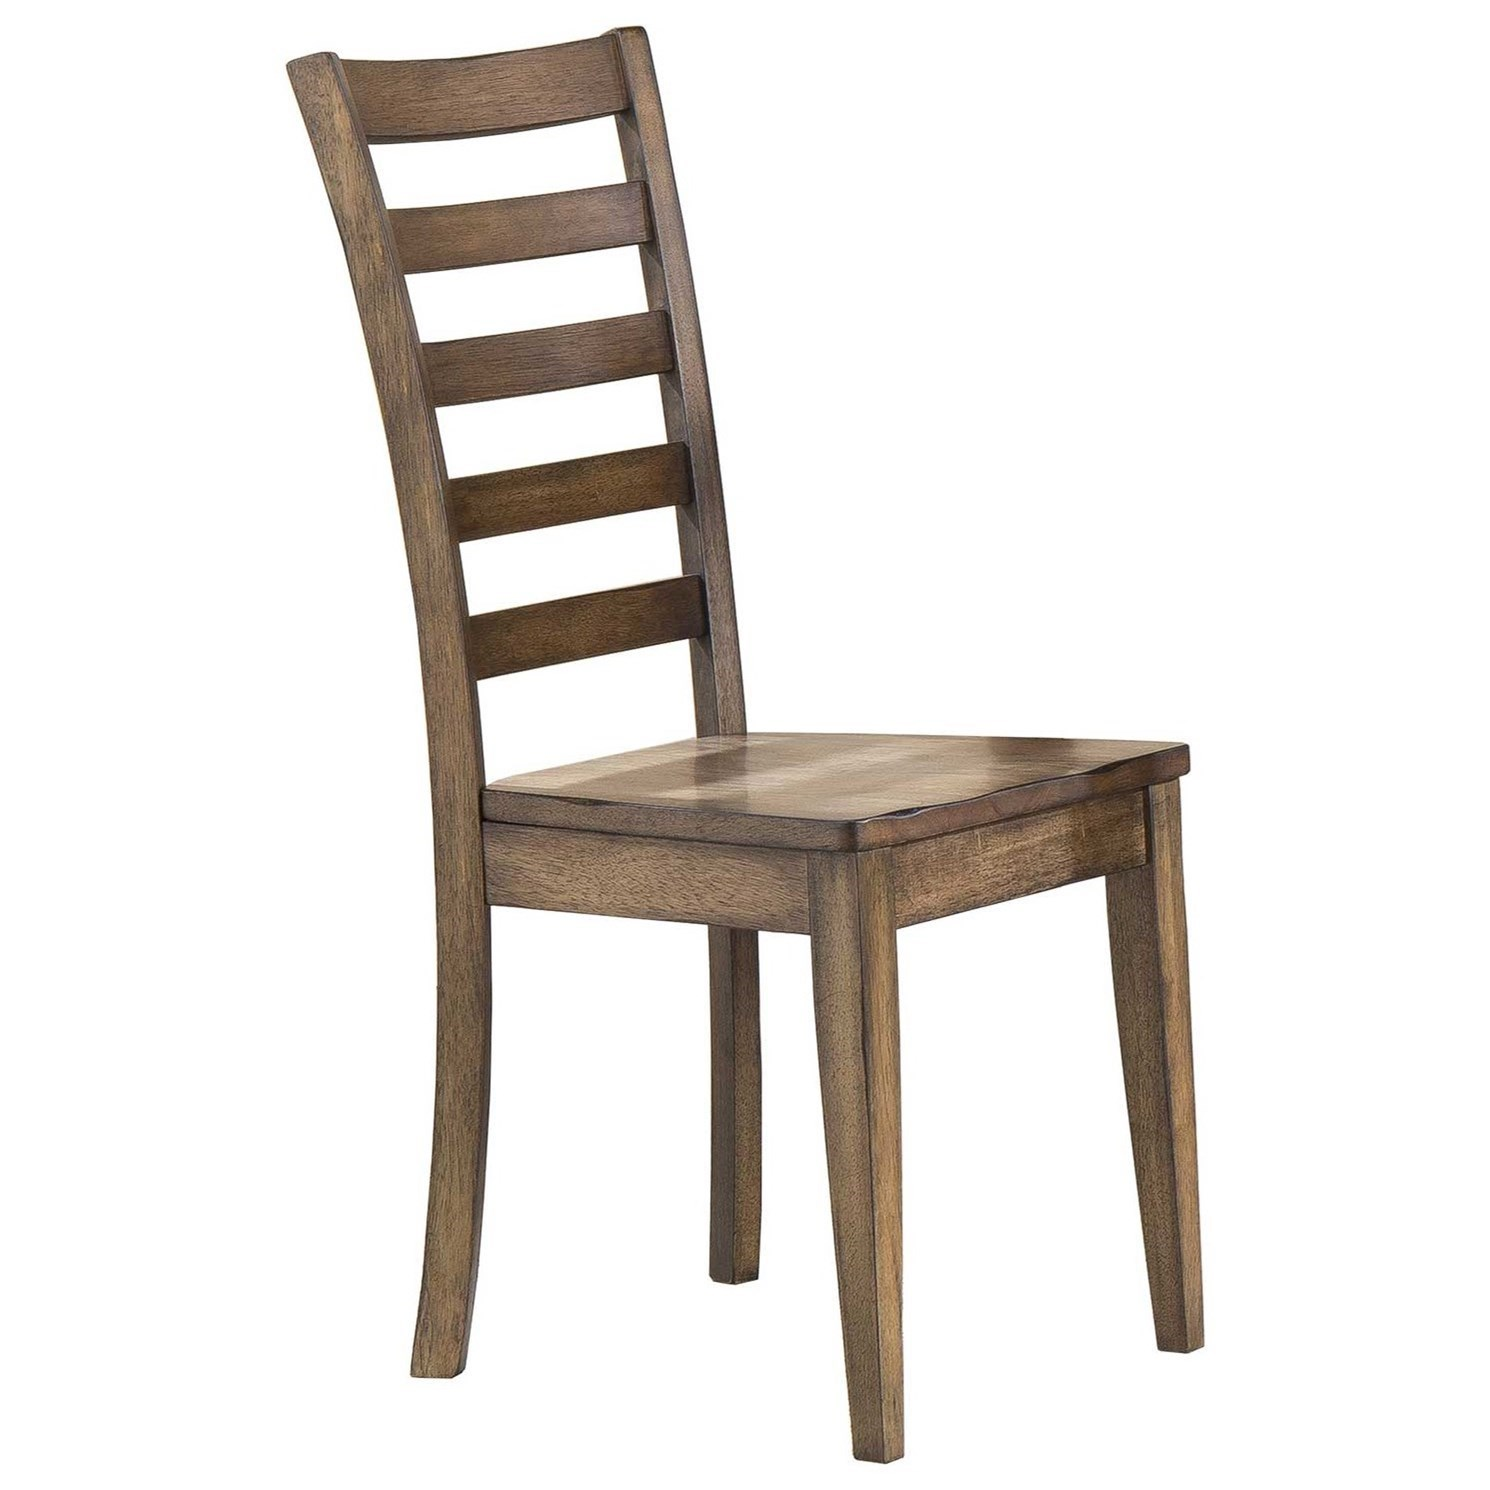 Carmel Ladderback Side Chair With Rustic Brown Finish By Winners Only